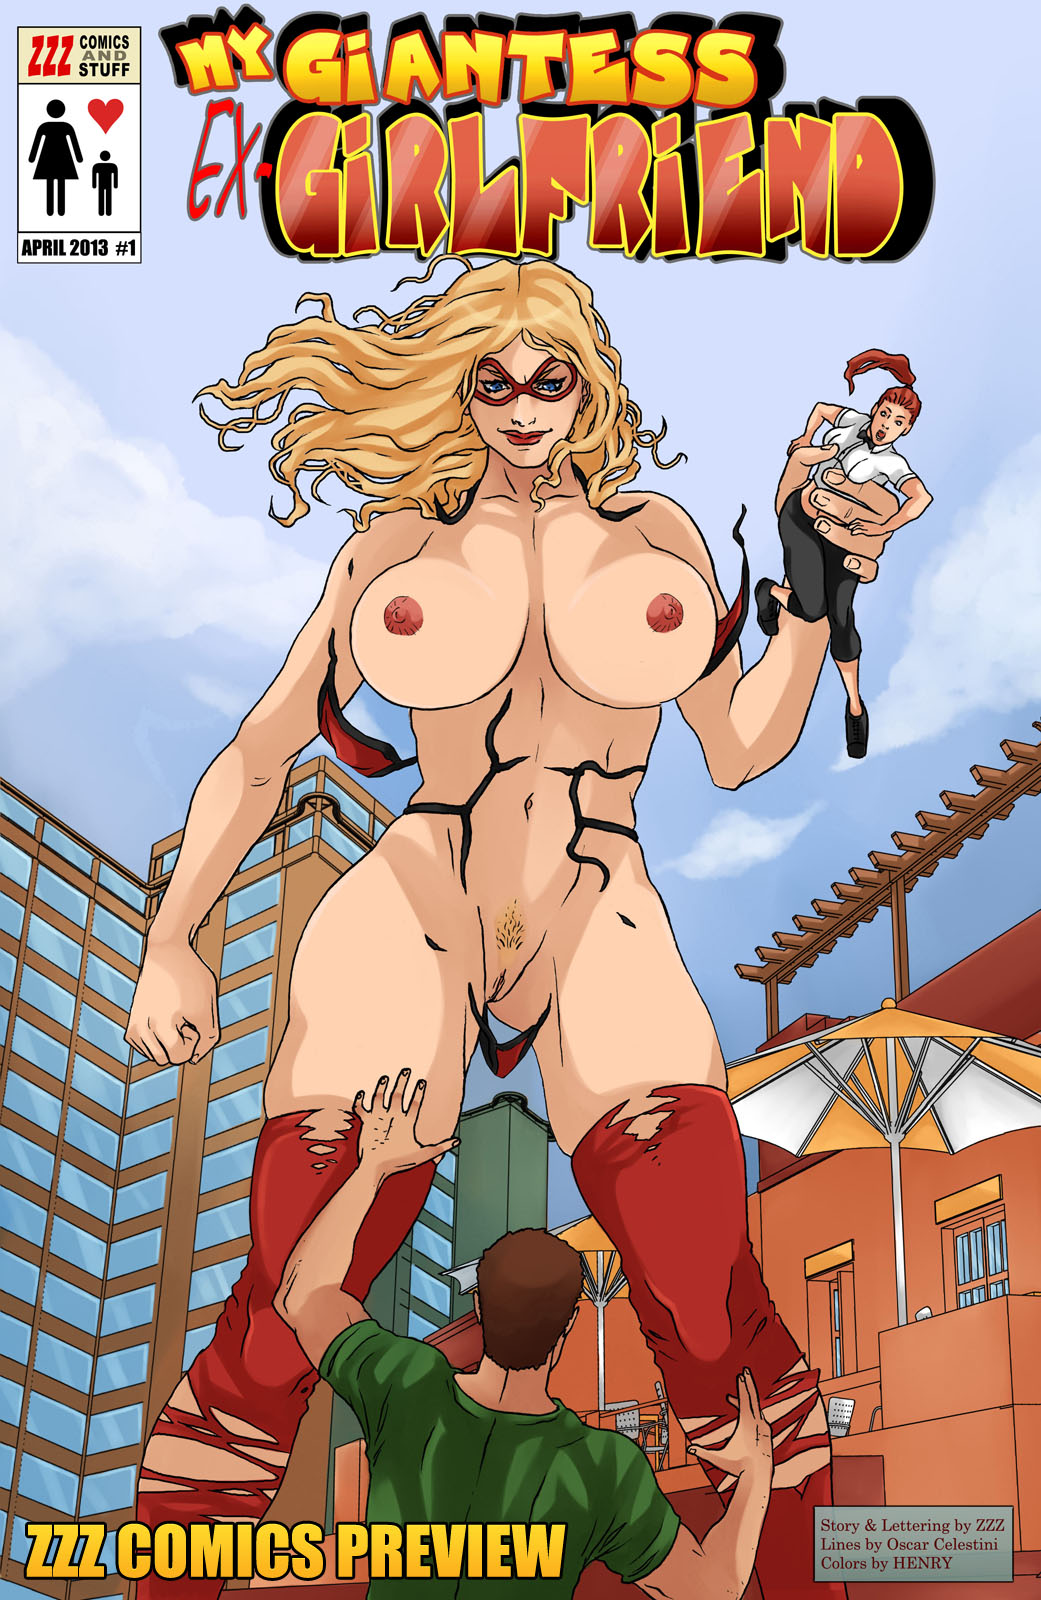 Xxx giantess sexual fashion tit